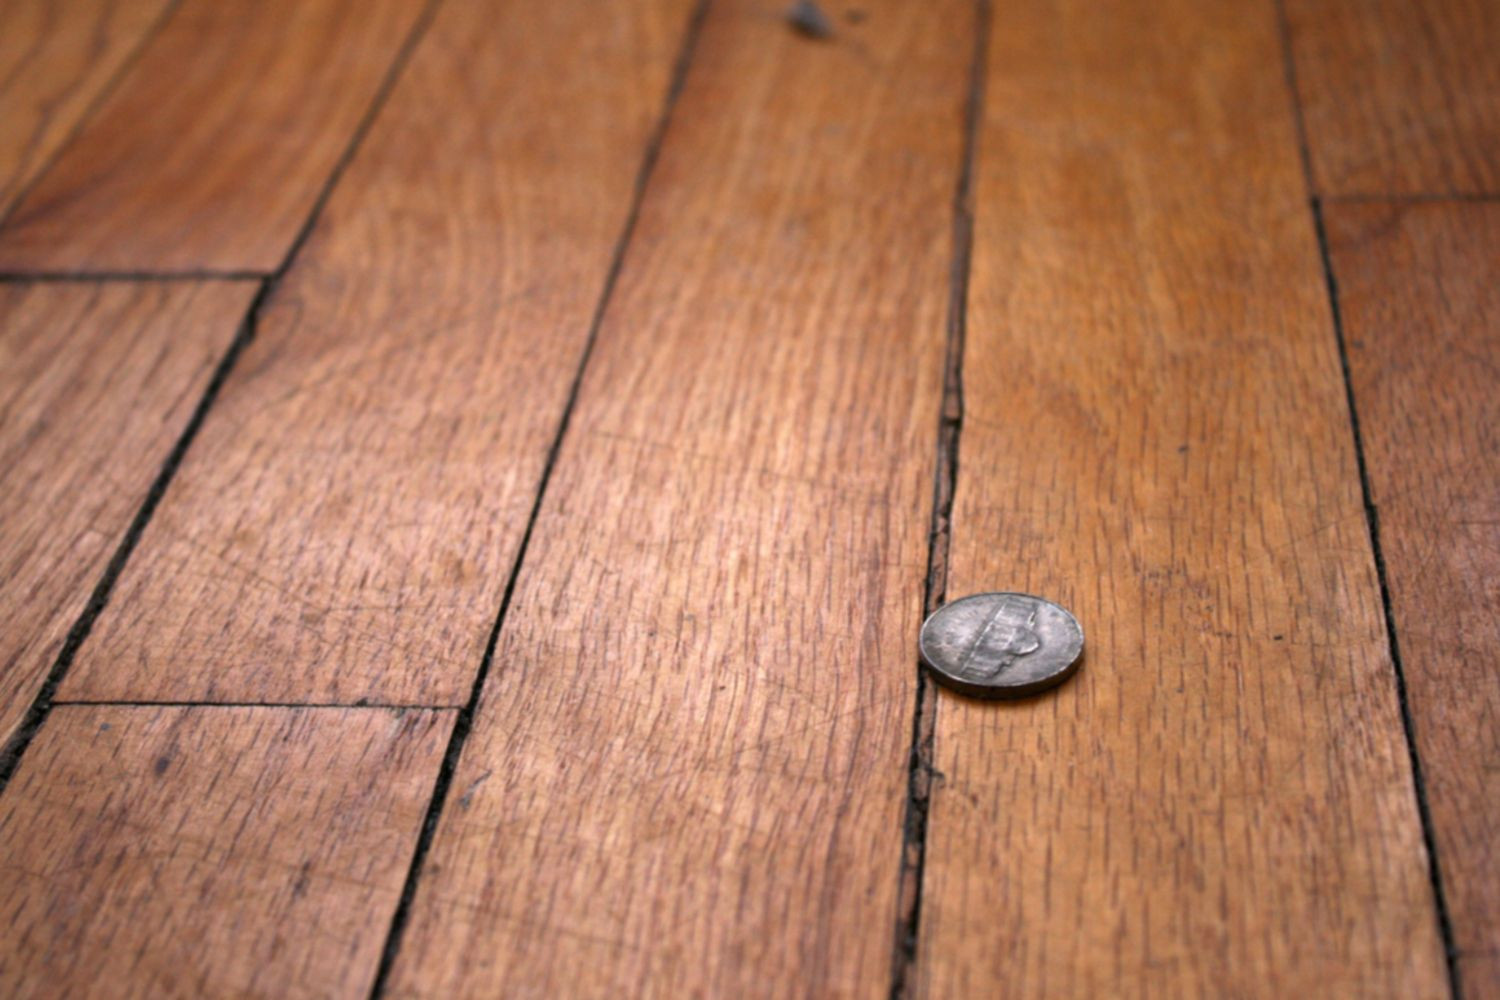 installing tongue and groove engineered hardwood flooring of why your engineered wood flooring has gaps inside wood floor with gaps between boards 1500 x 1000 56a49eb25f9b58b7d0d7df8d